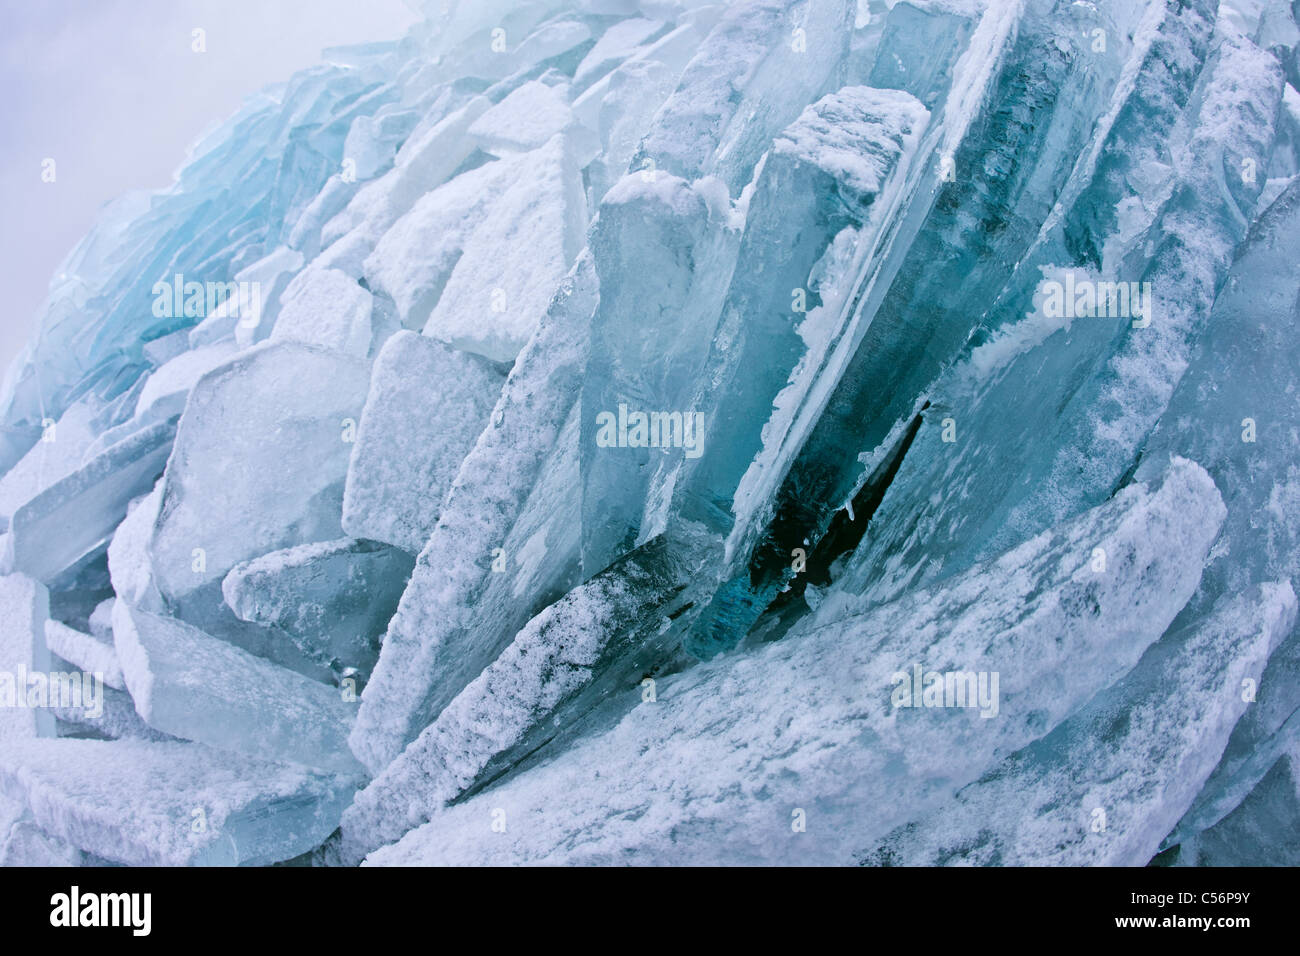 The Netherlands, Oosterleek, Piled up ice on frozen lake called Markermeer. - Stock Image